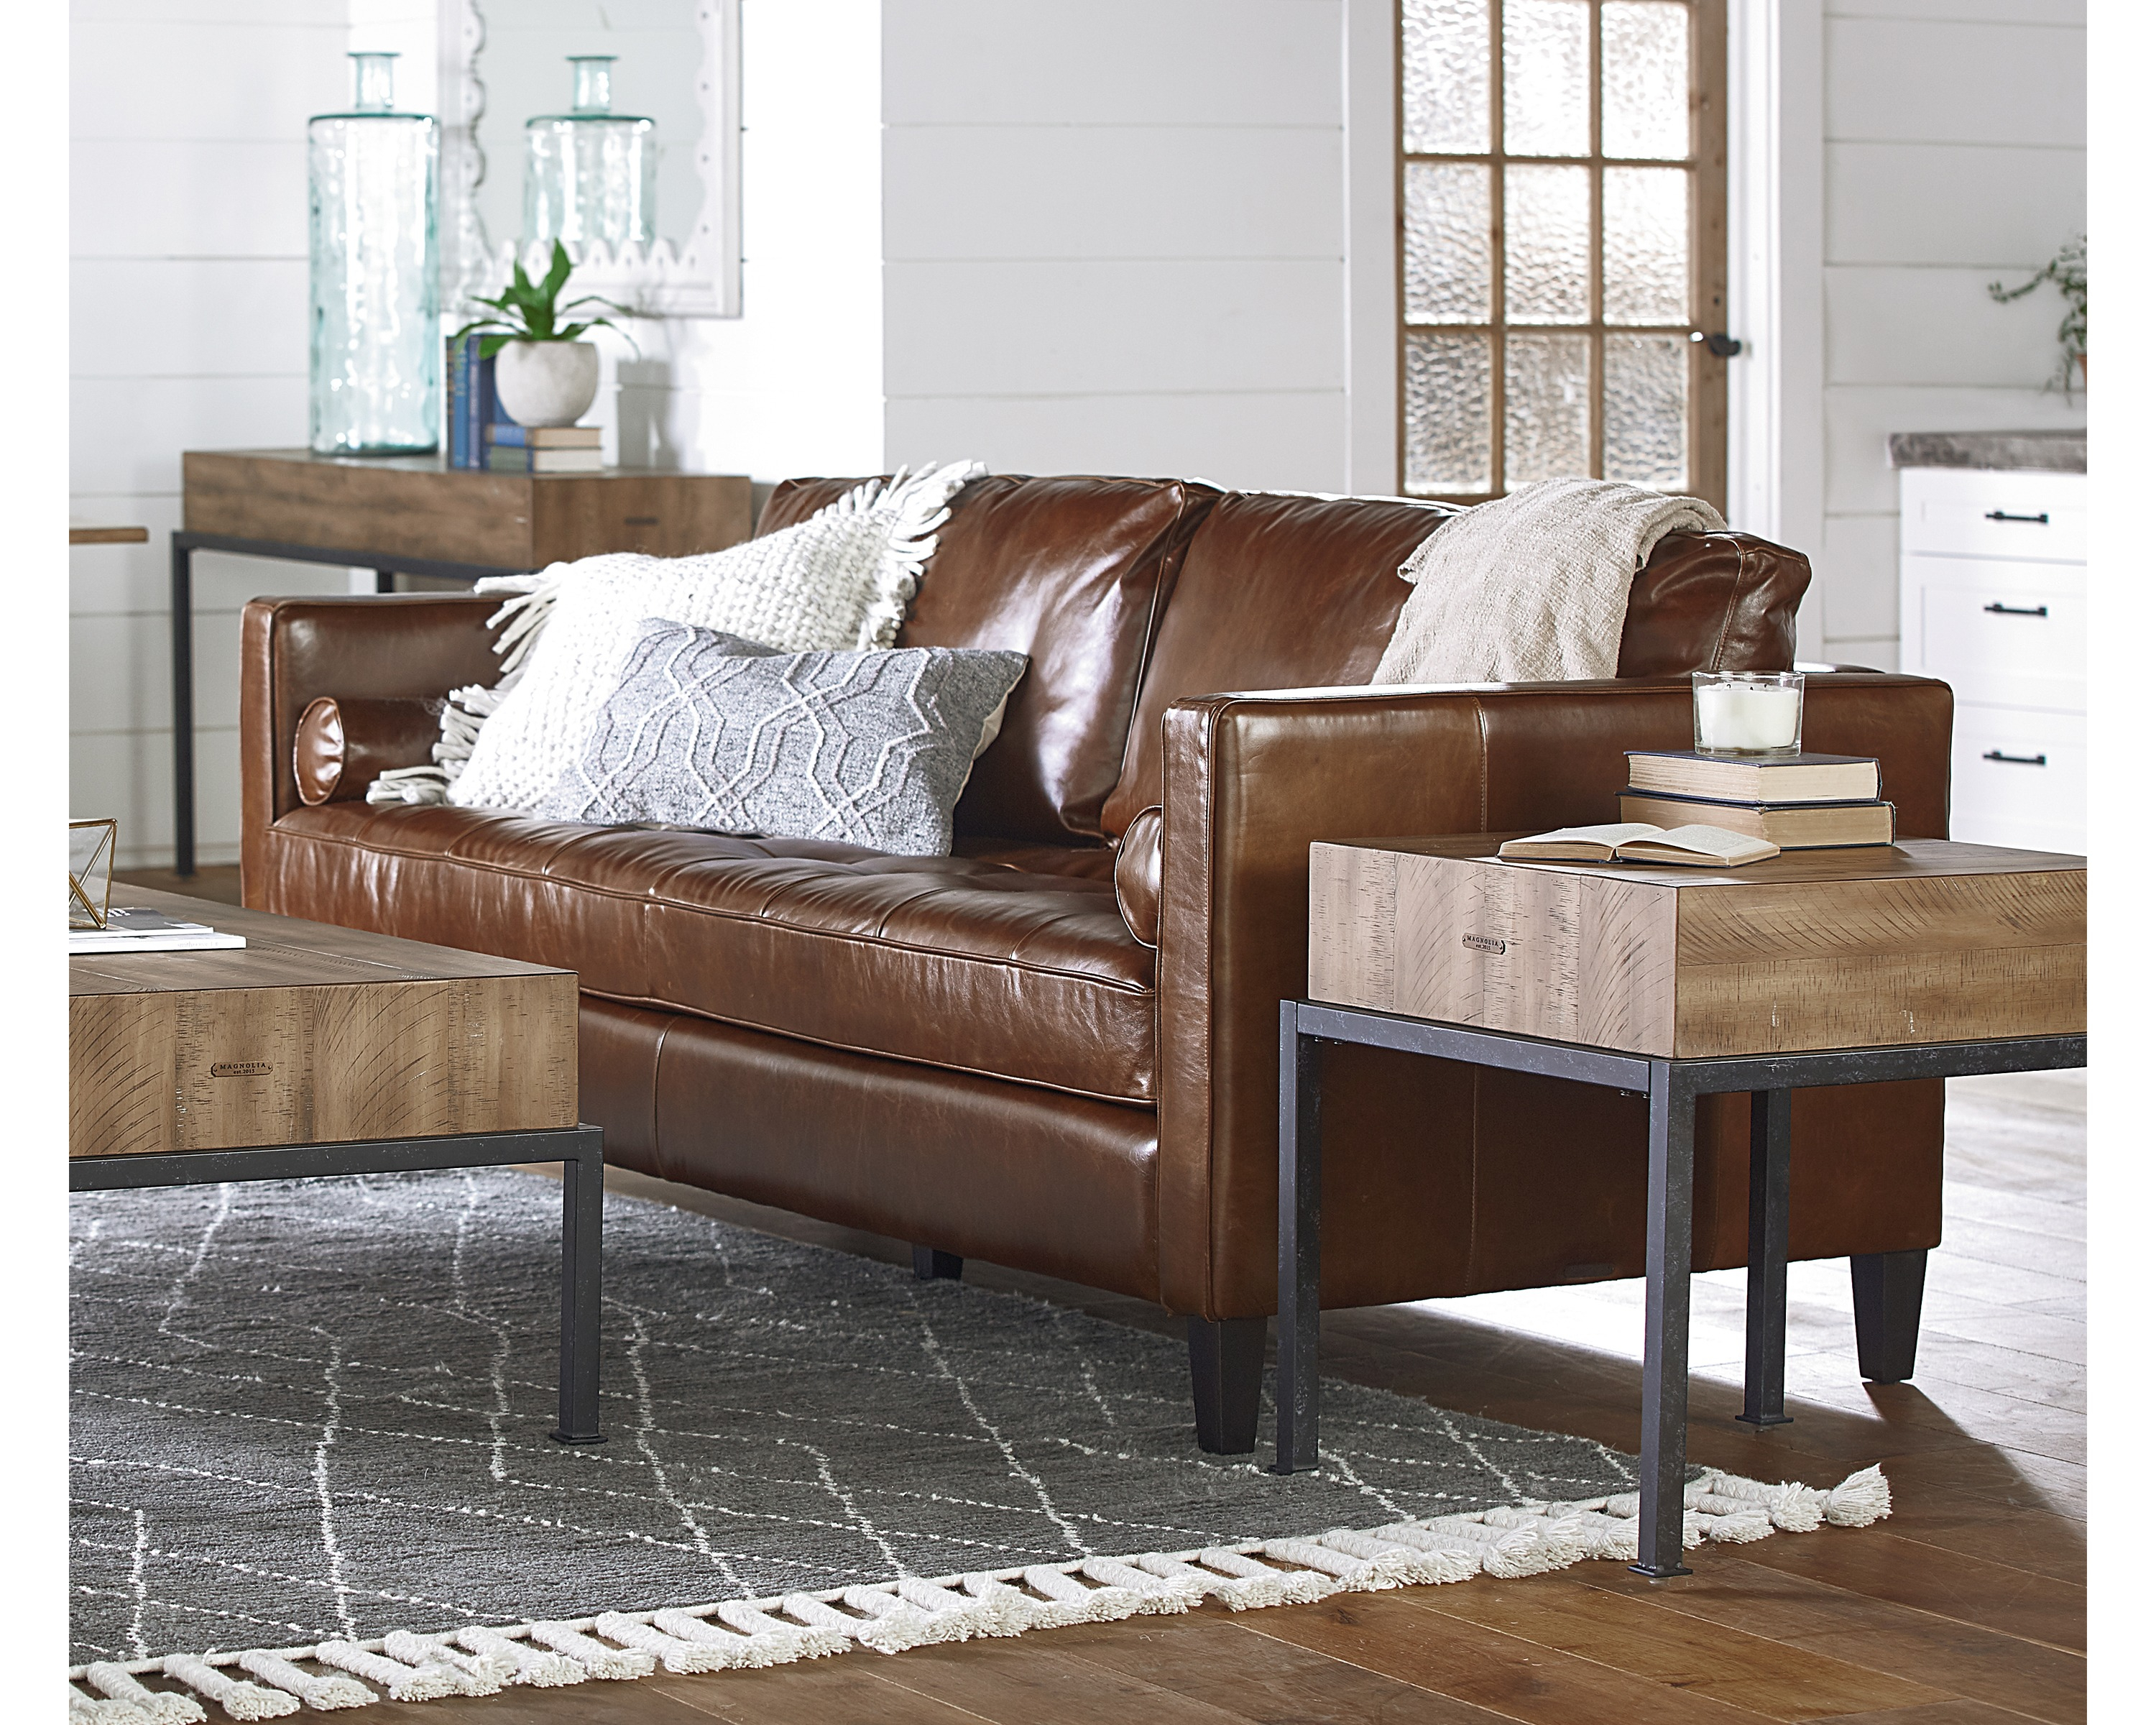 Dapper Sofa – Magnolia Home In Magnolia Home Dapper Fog Sofa Chairs (View 9 of 25)